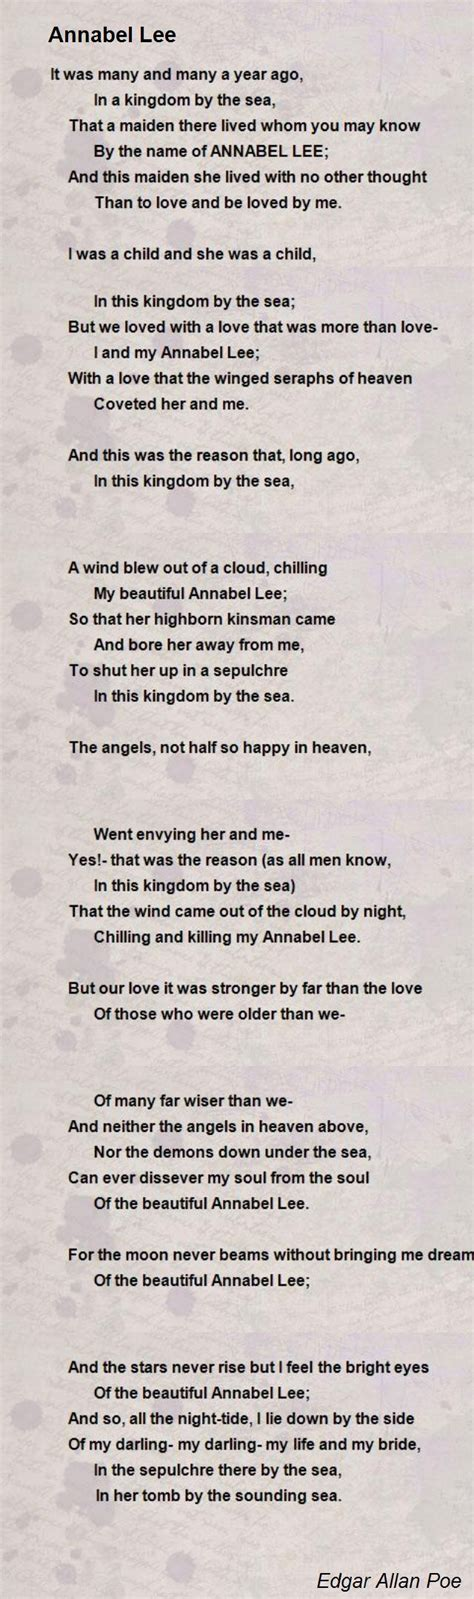 annabel lee by edgar allan poe annabel lee poem by edgar allan poe poem hunter